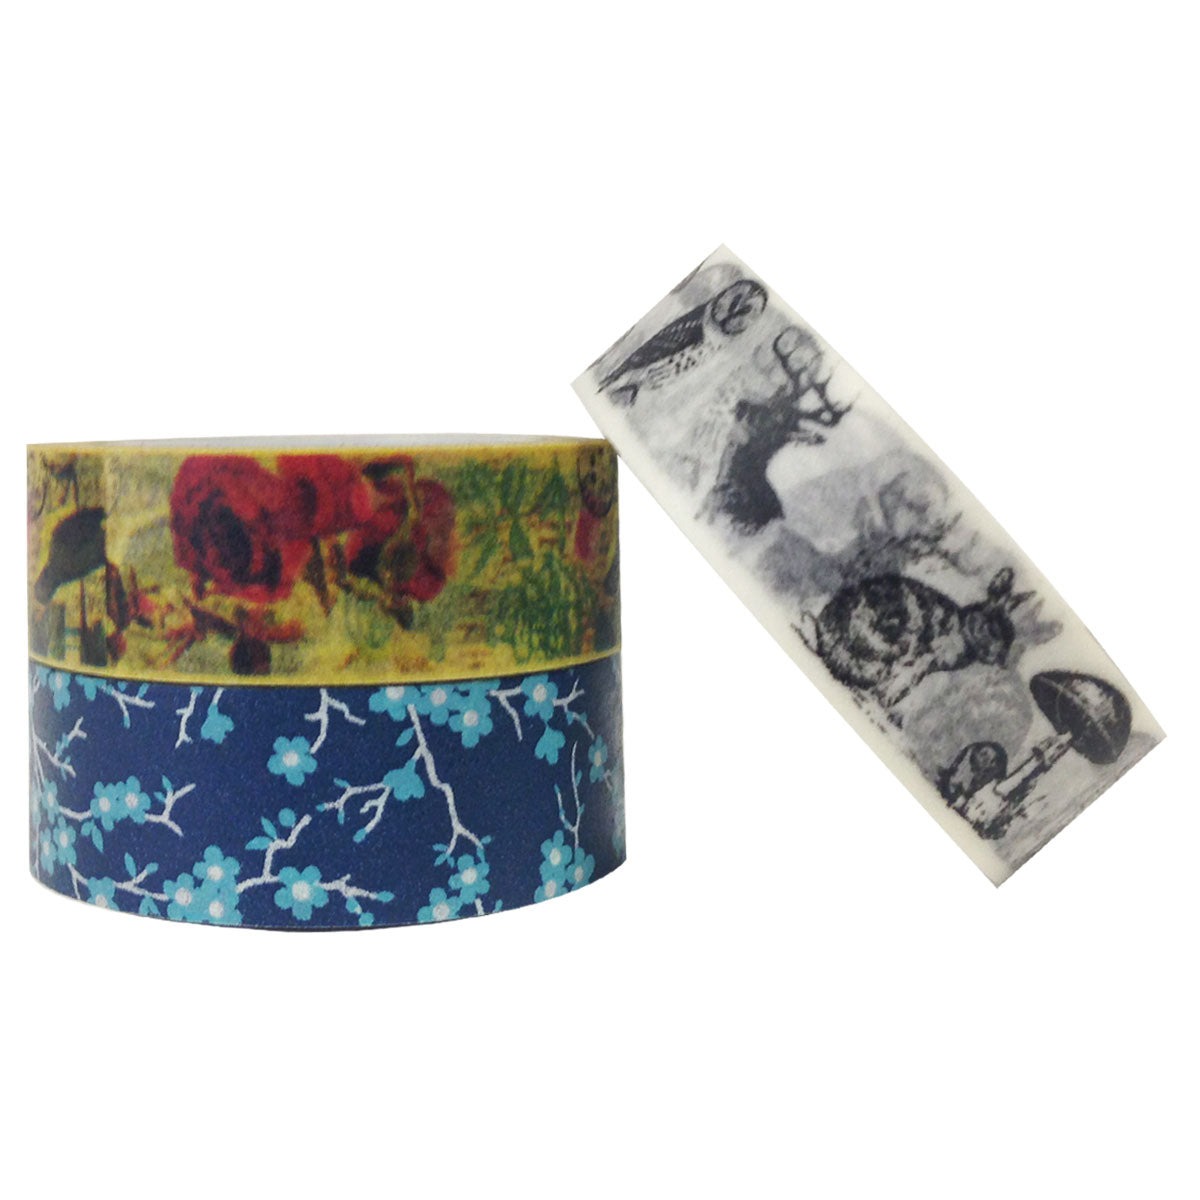 Wrapables Old Memories Japanese Washi Masking Tape (set of 3)